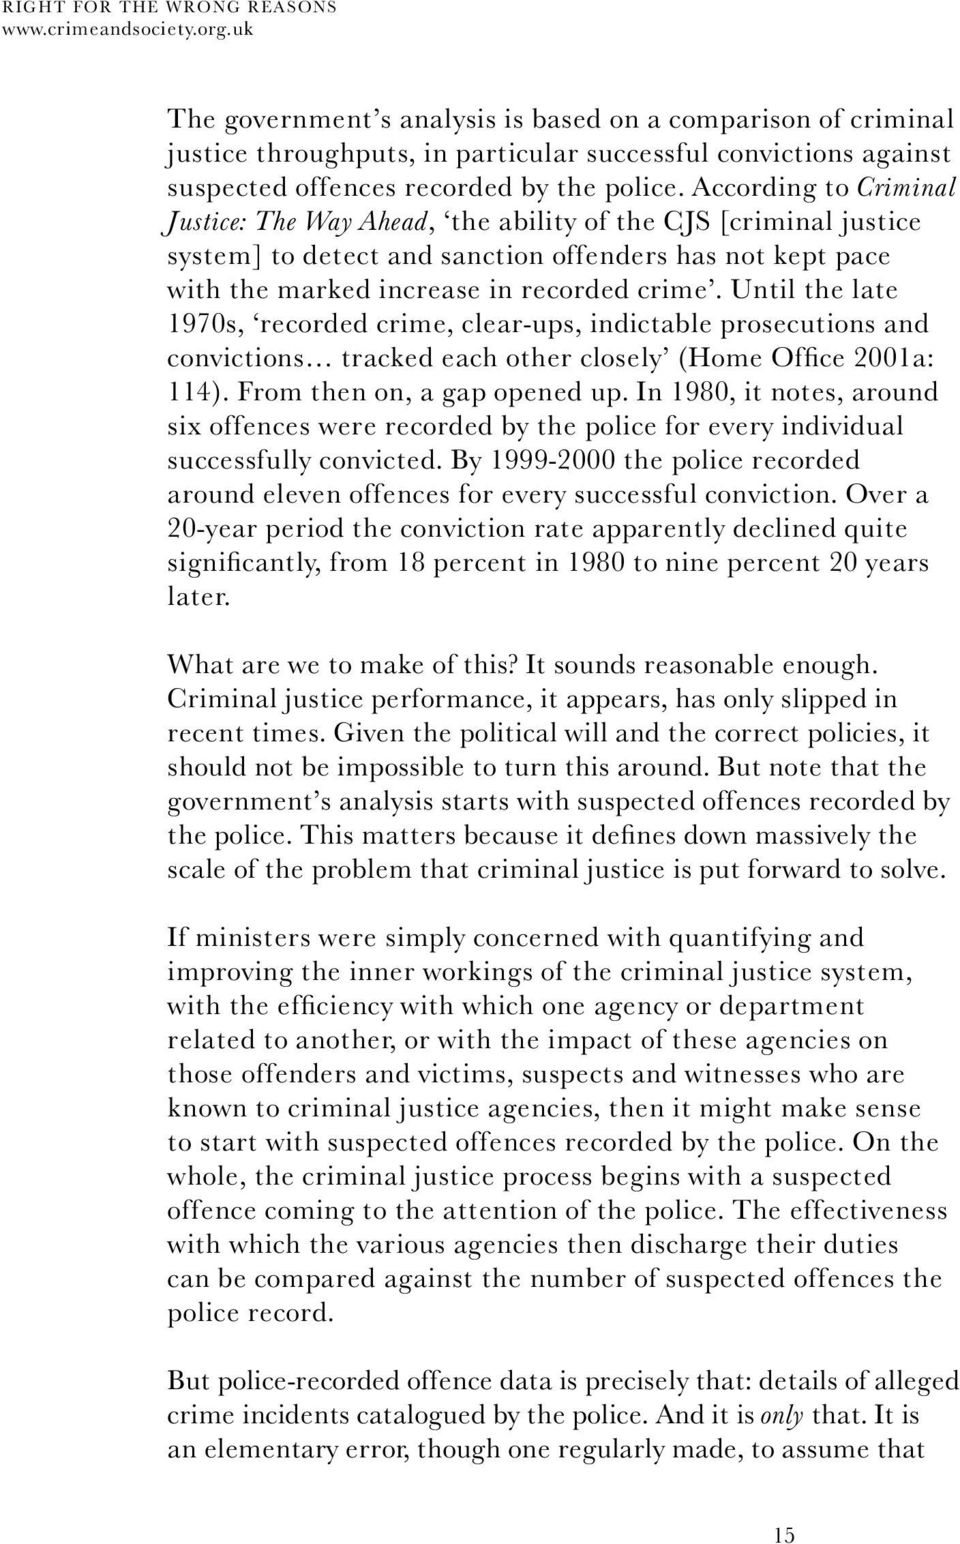 Until the late 1970s, recorded crime, clear-ups, indictable prosecutions and convictions tracked each other closely (Home Office 2001a: 114). From then on, a gap opened up.